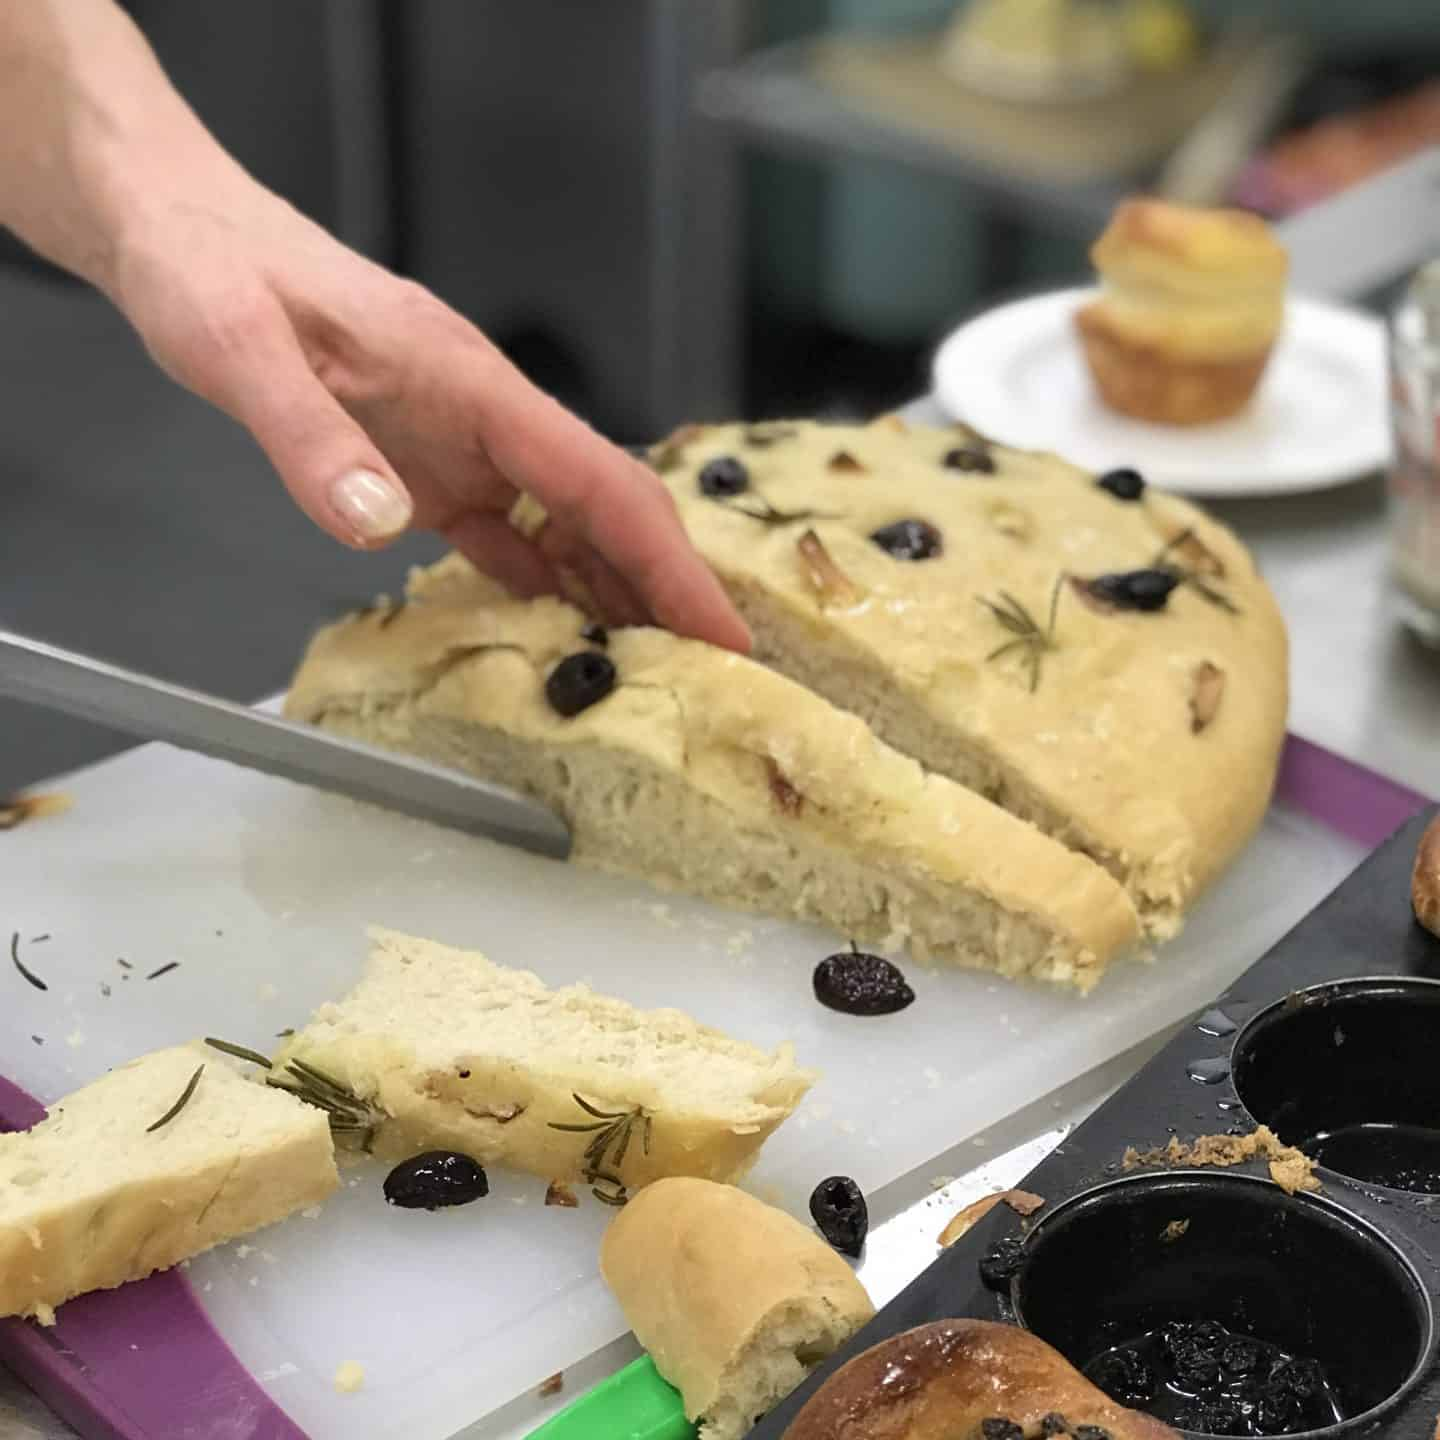 Freshly baked foccacia being sliced